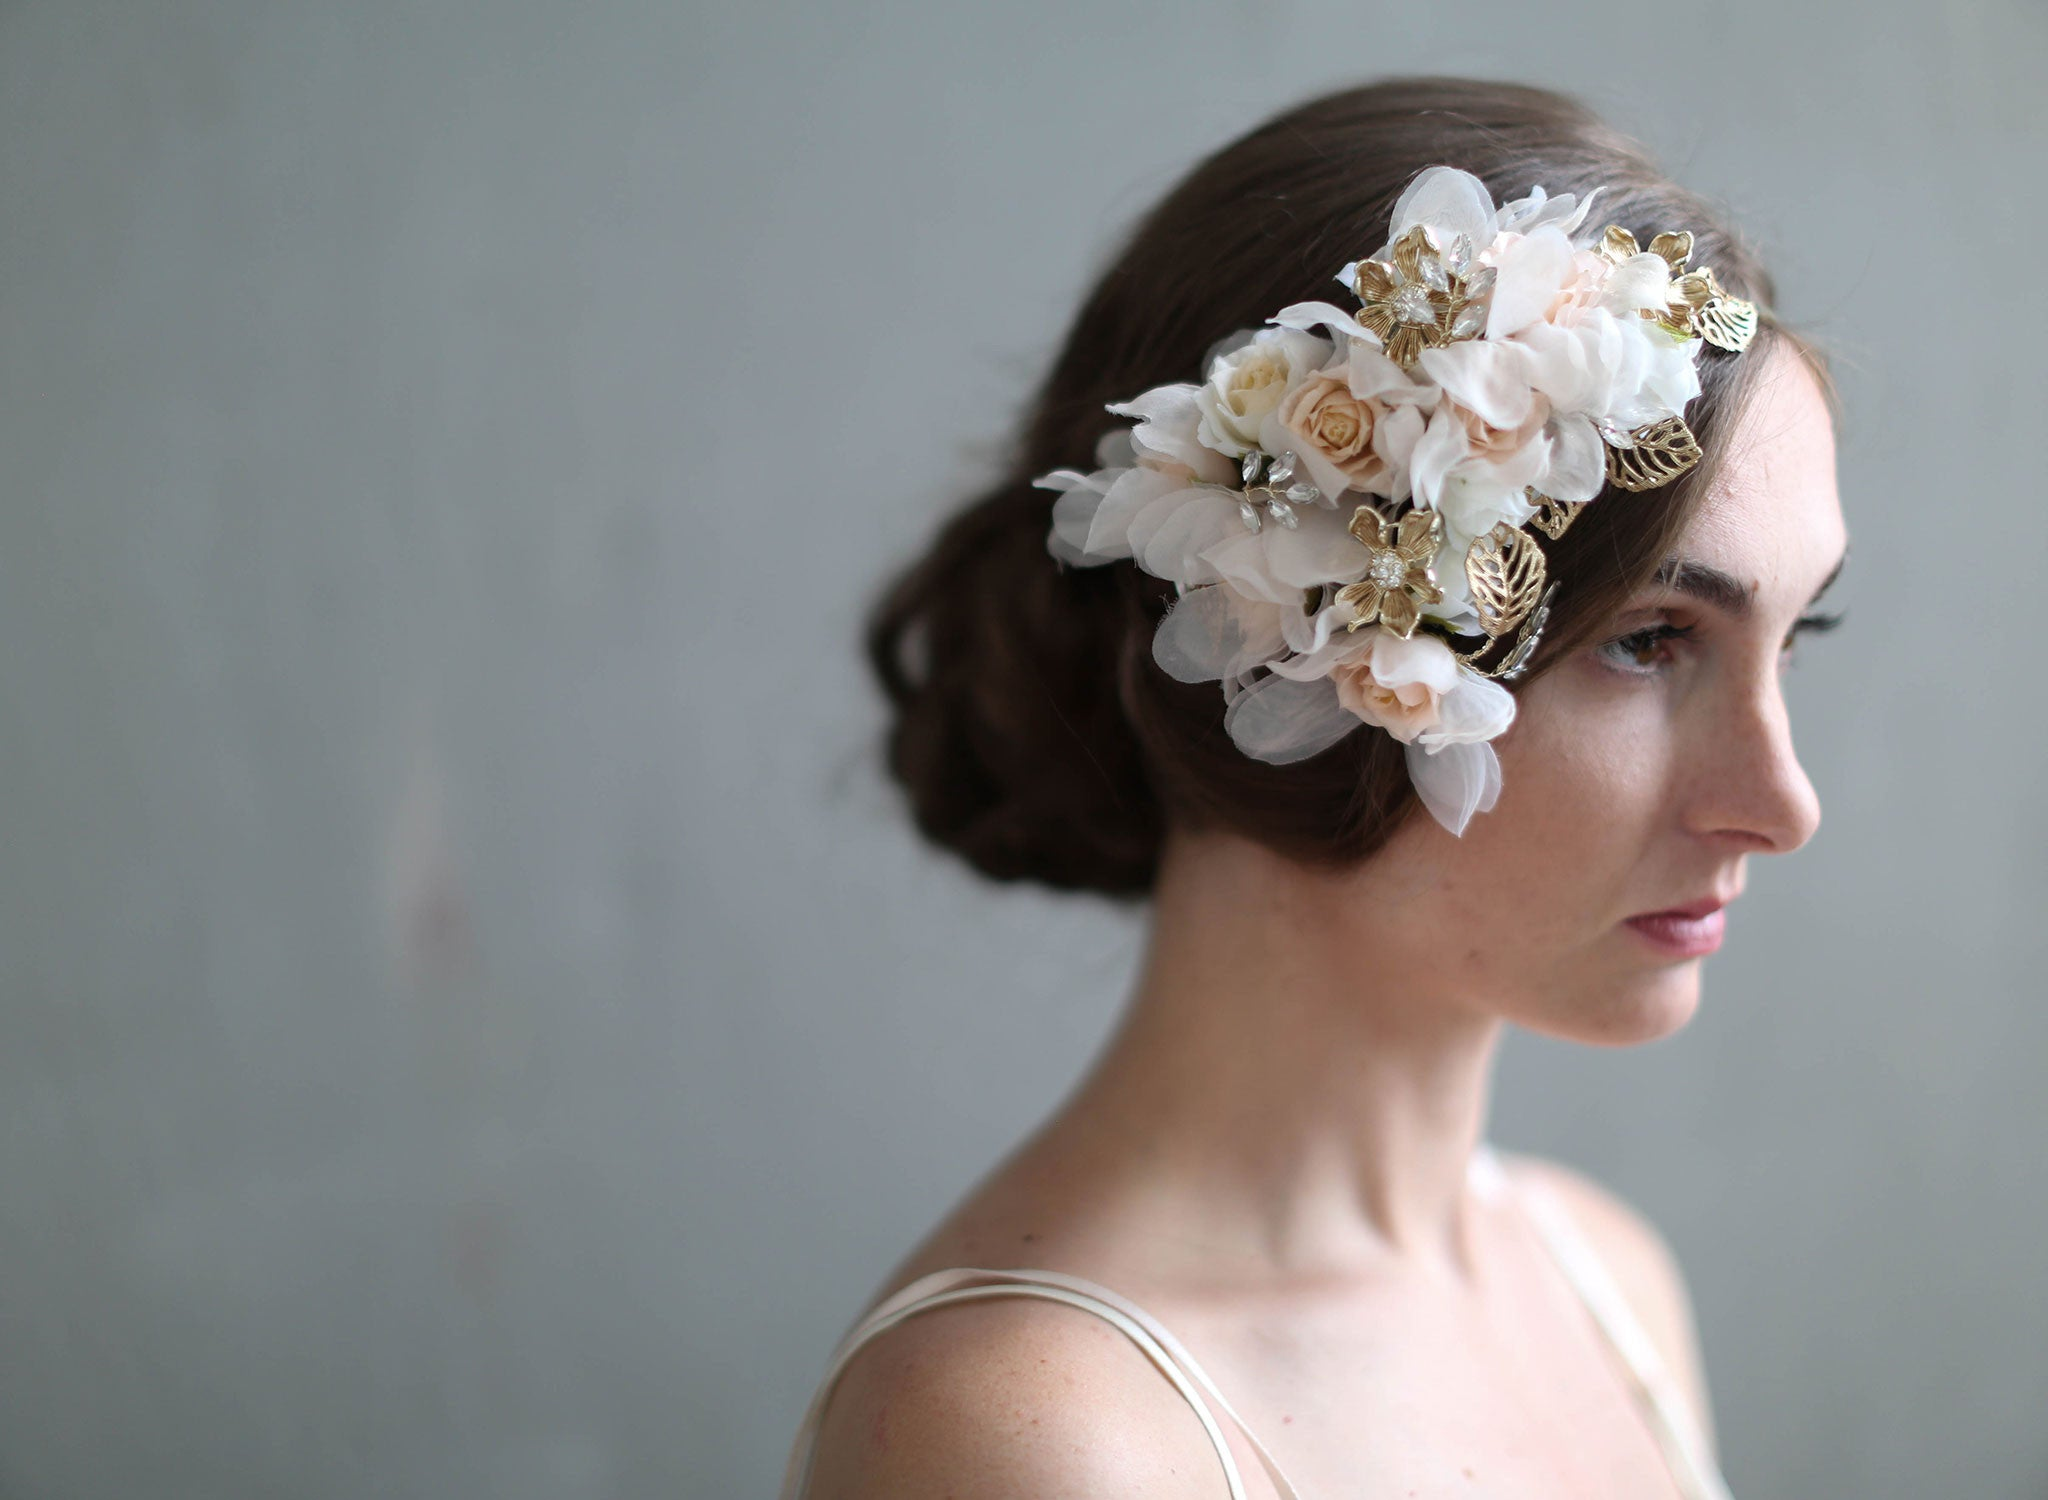 Bridal Floral Headpiece Blush And Gold Bouquet Headpiece Style